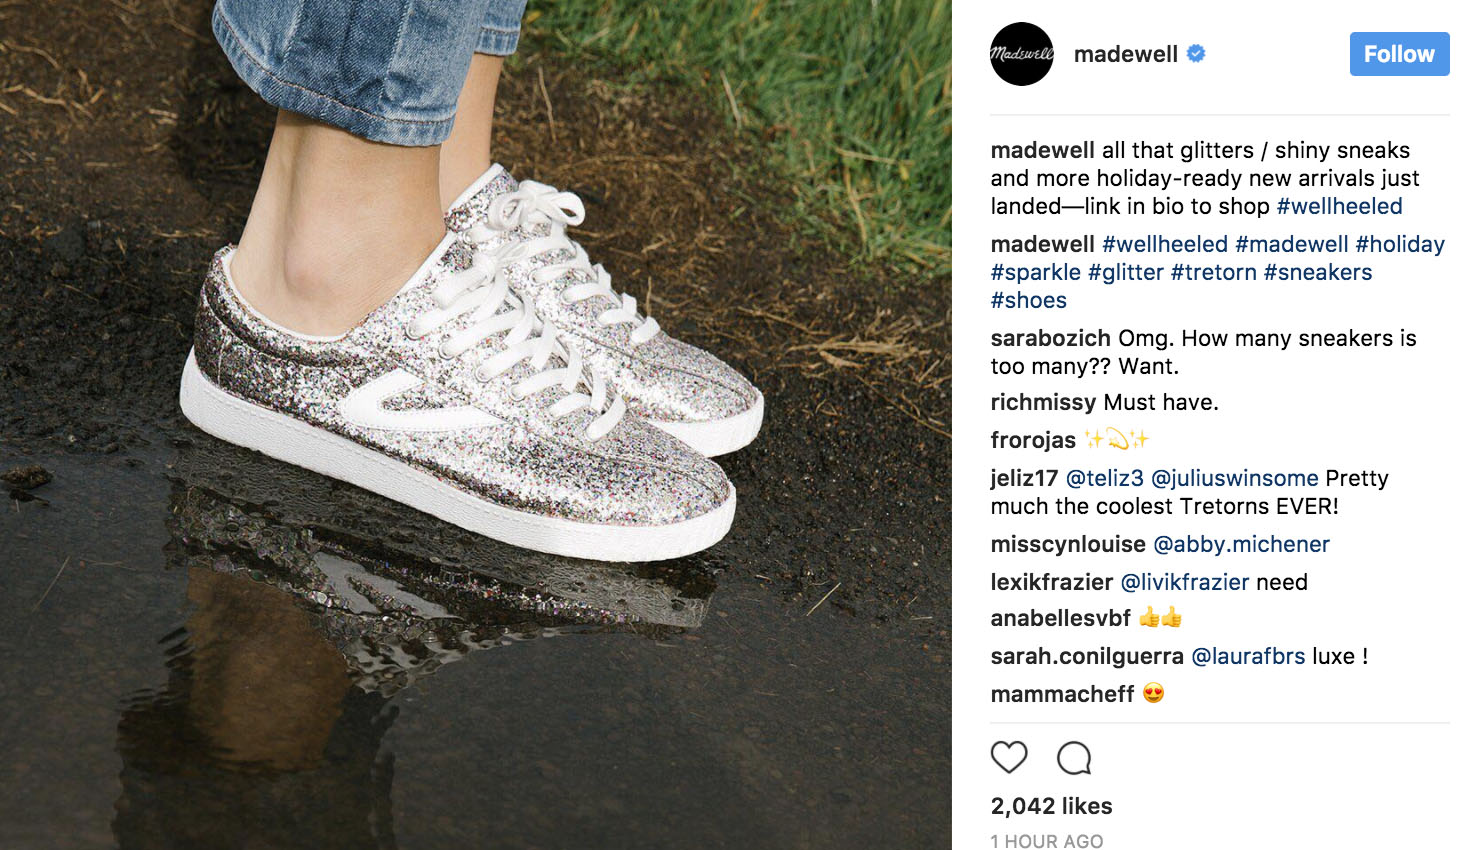 madewell.jpg great instagram captions